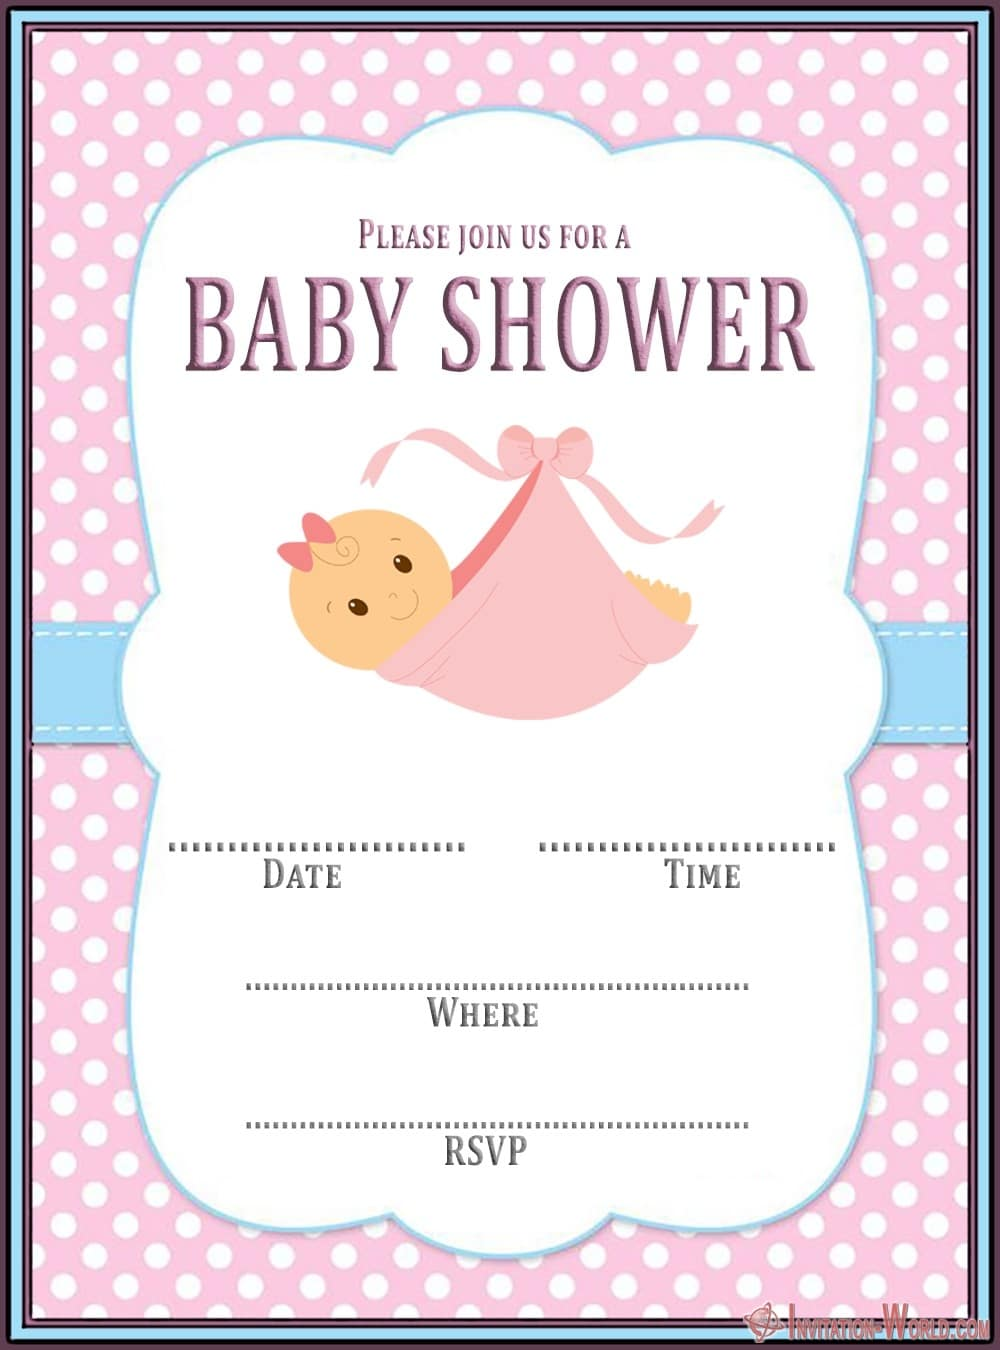 Free Baby Shower Invitation Template Pink 150x150 - Editable Baby Shower Invitation Card